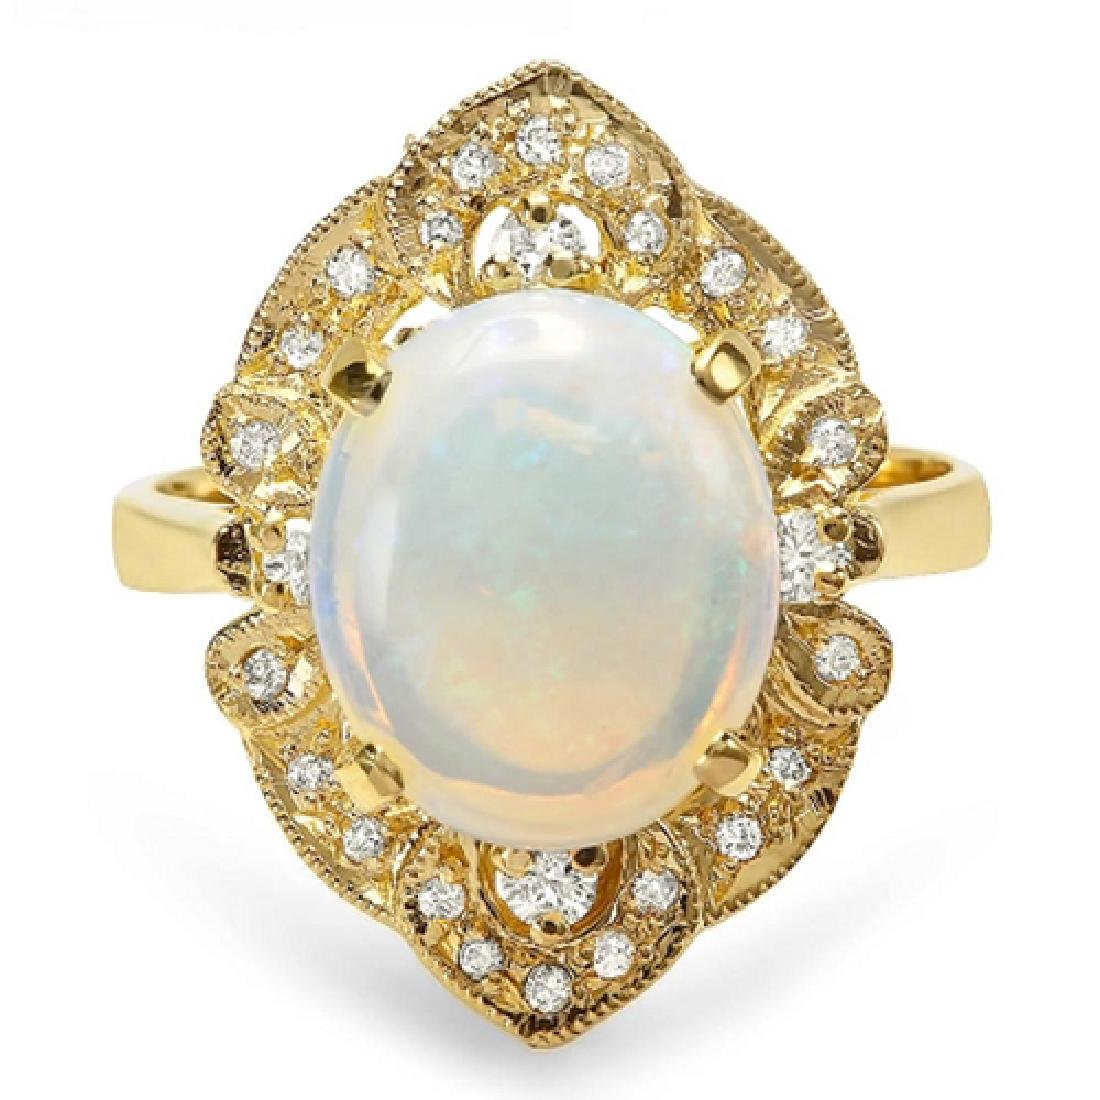 3.15 Carat Natural Opal 14K Solid Yellow Gold Diamond